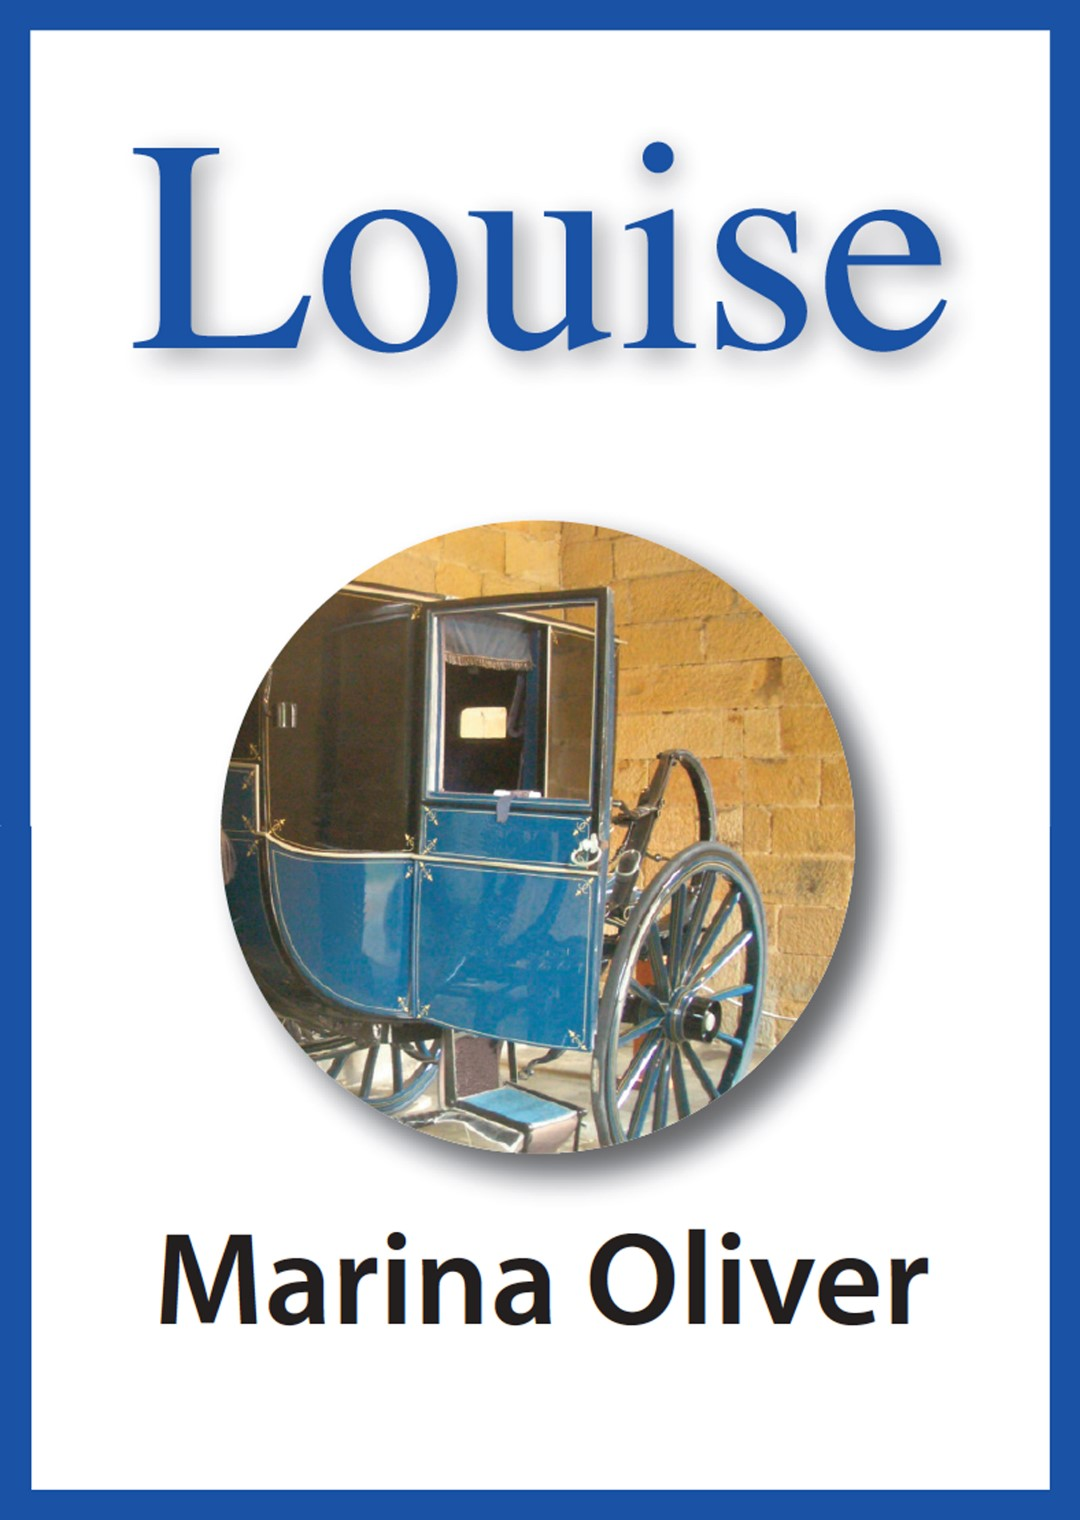 Cover of Louise Ebook